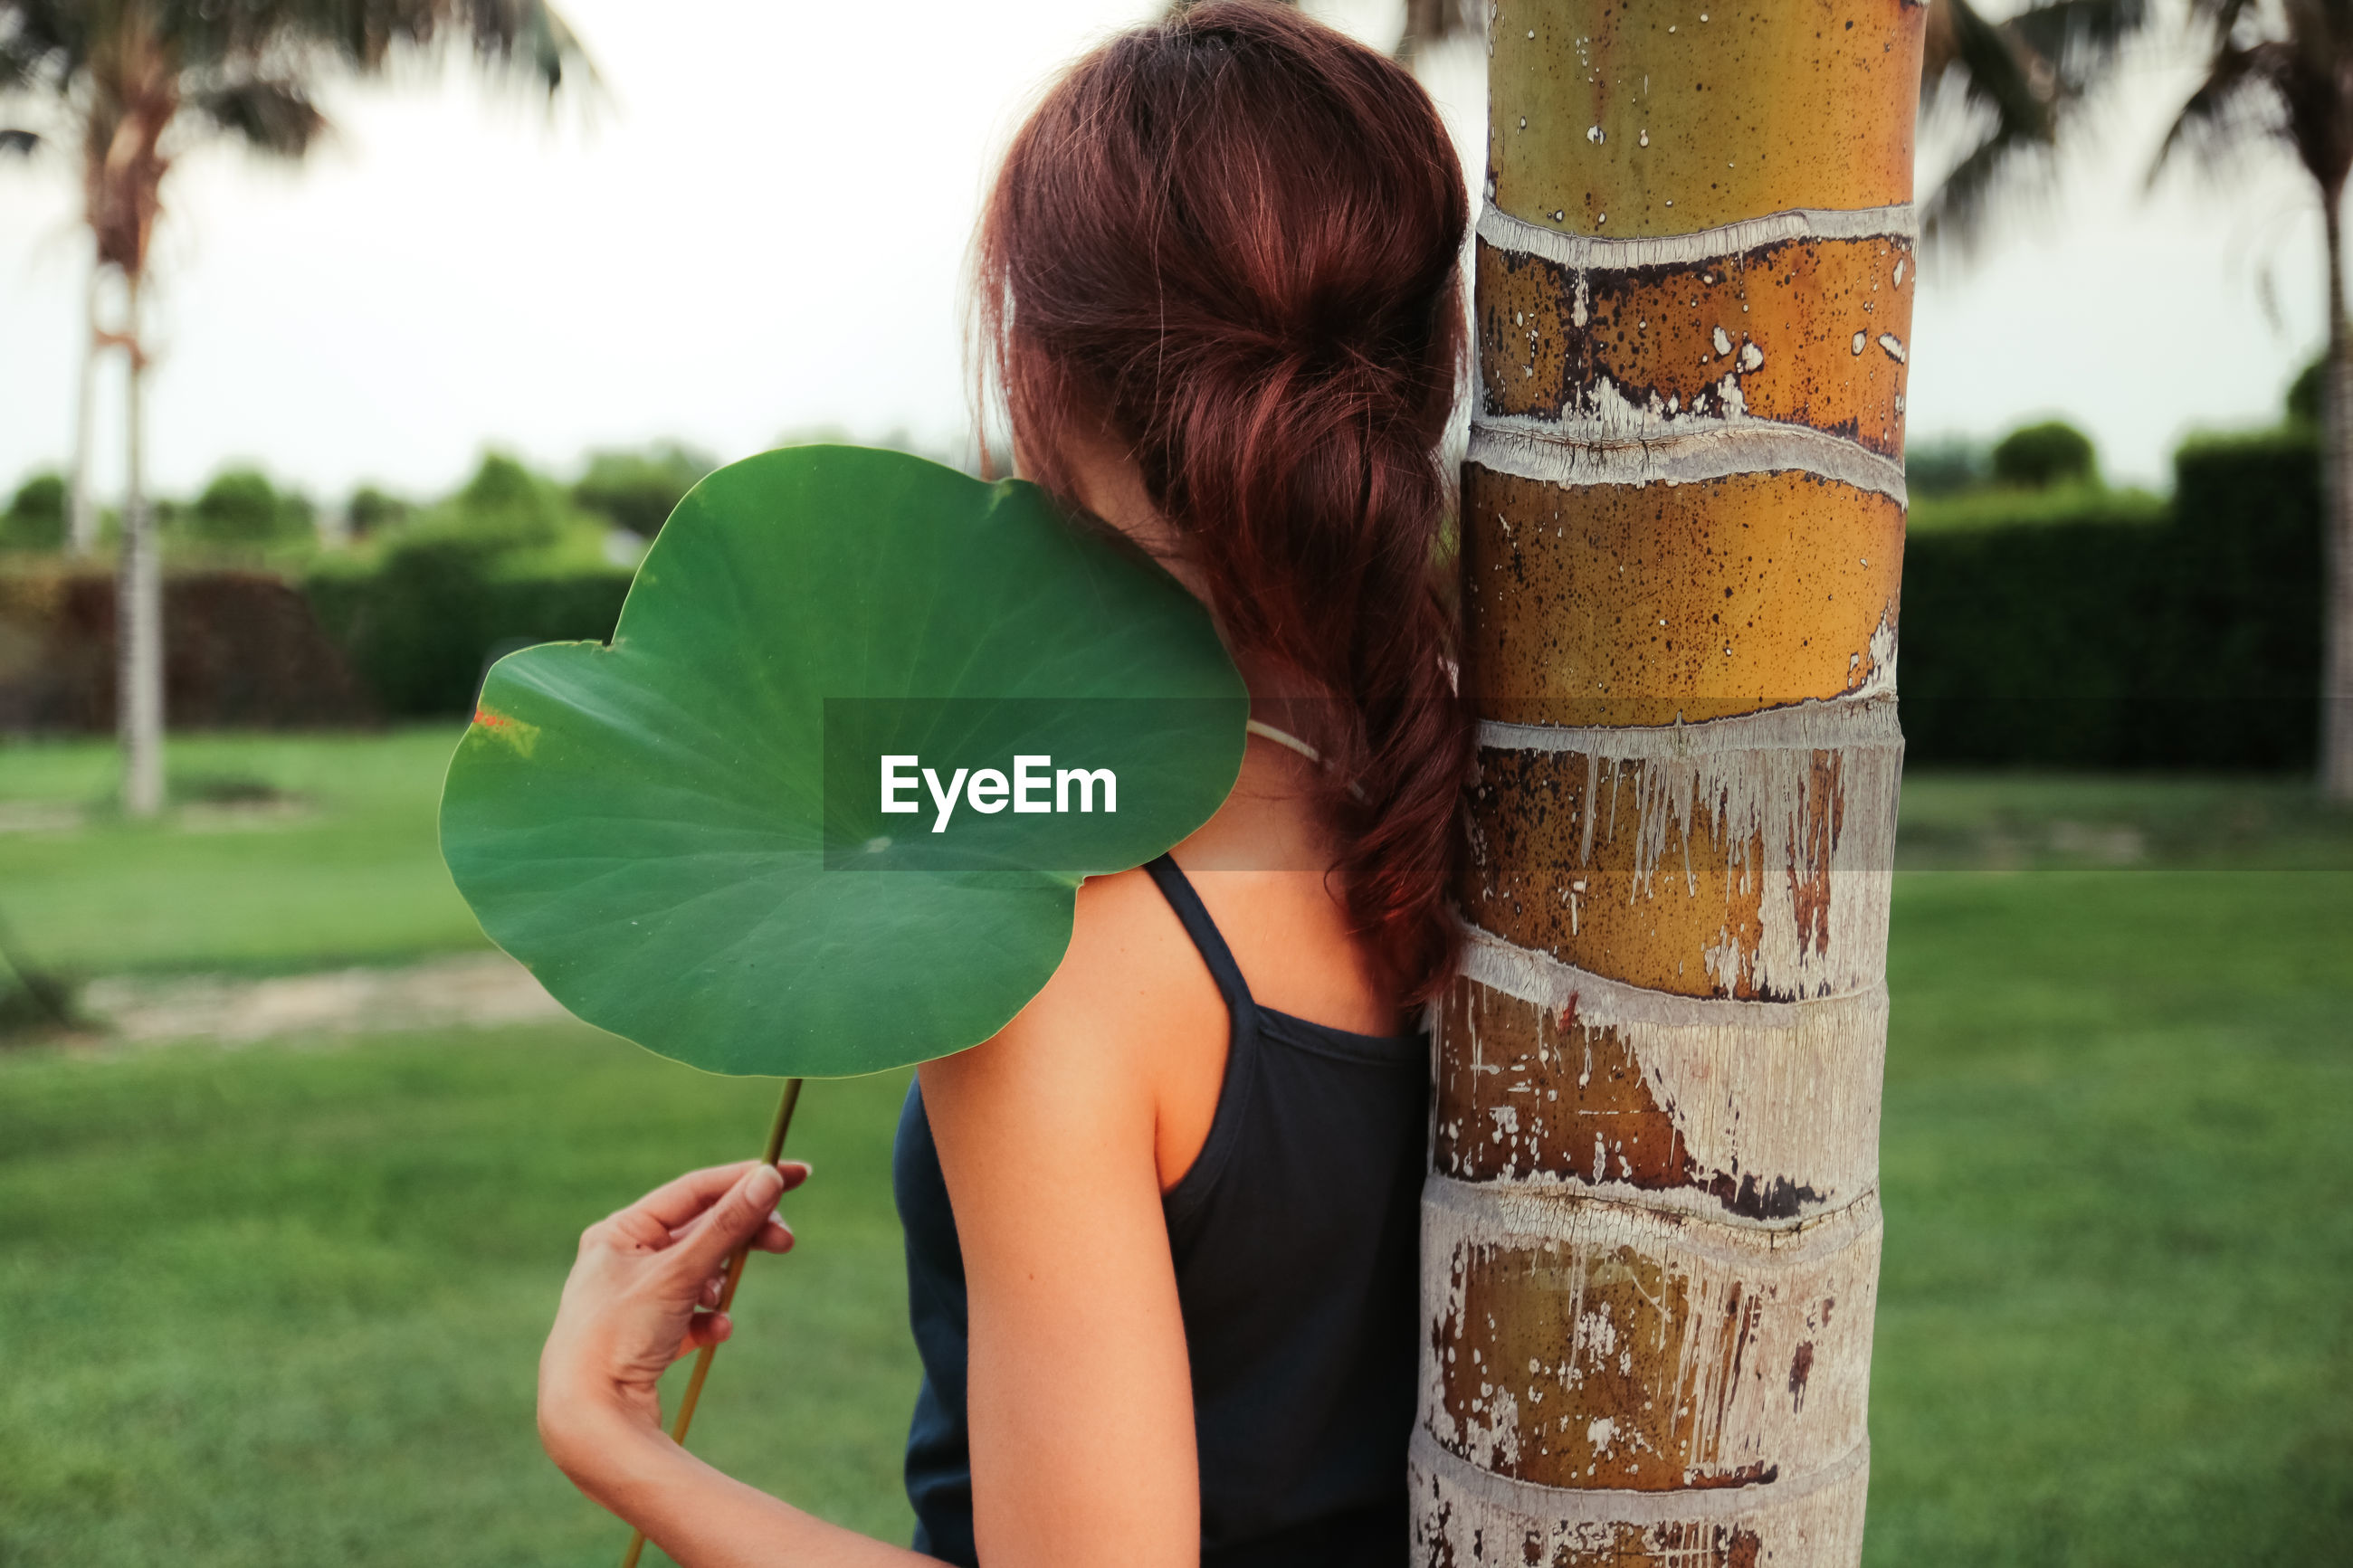 Leaf me here Back View Grass Portrait Of A Woman Sicily Summertime Beauty In Nature Close-up Garden Green Color Holding Leaf Lifestyles Nature One Person Outdoors Portraiture Real People Red Hair Tree Tree Trunk Woman Portrait Inner Power International Women's Day 2019 Empowering Equality A Sustainable Life